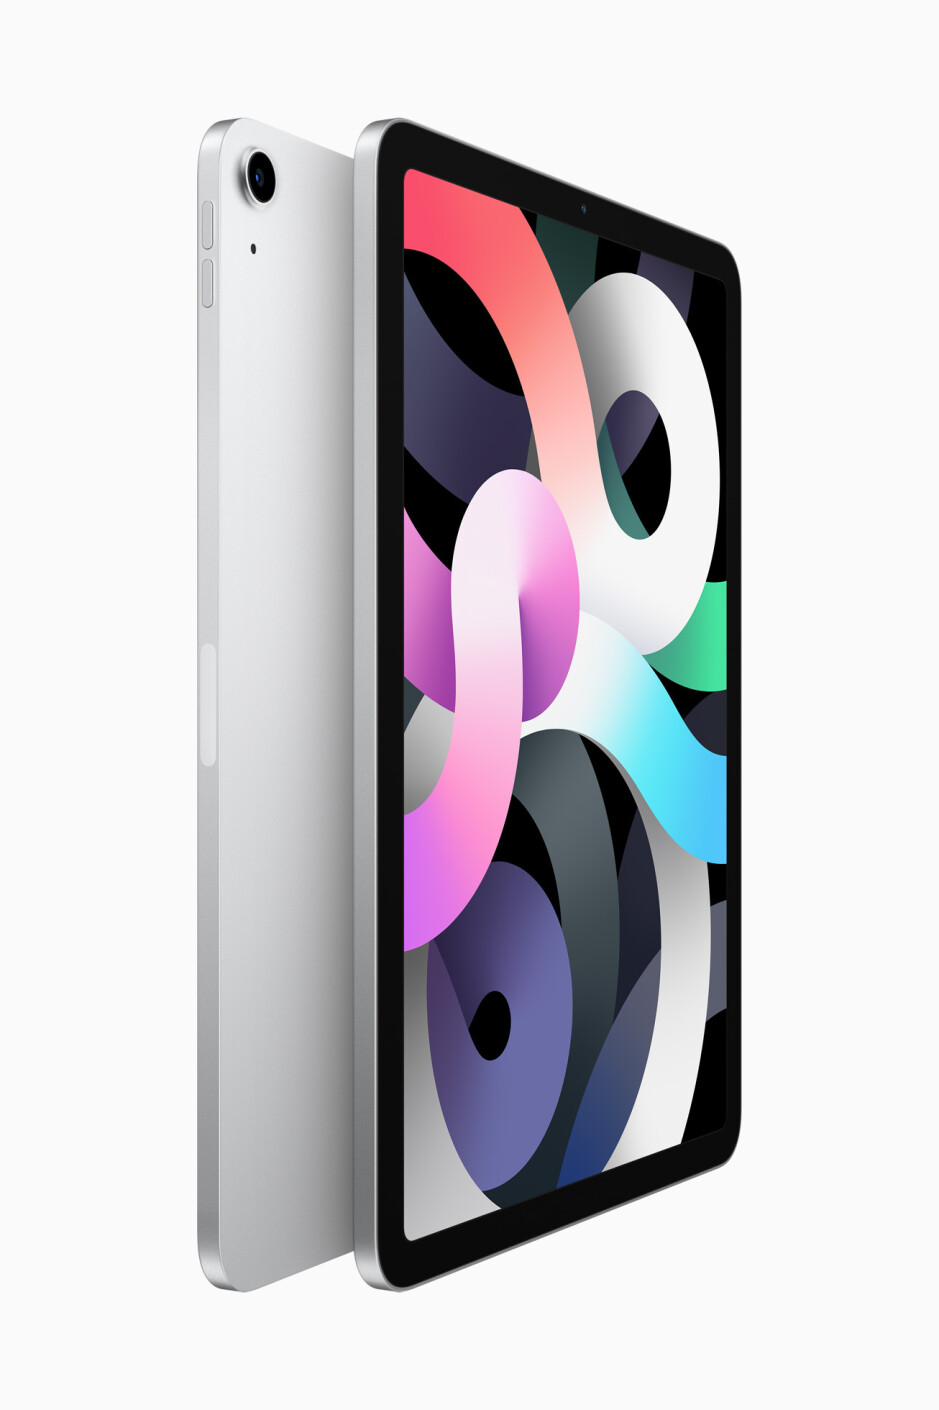 Apple iPad Air 4th gen - Apple iPad Air 4th gen, iPad 8th gen now official: Faster, flashier than ever